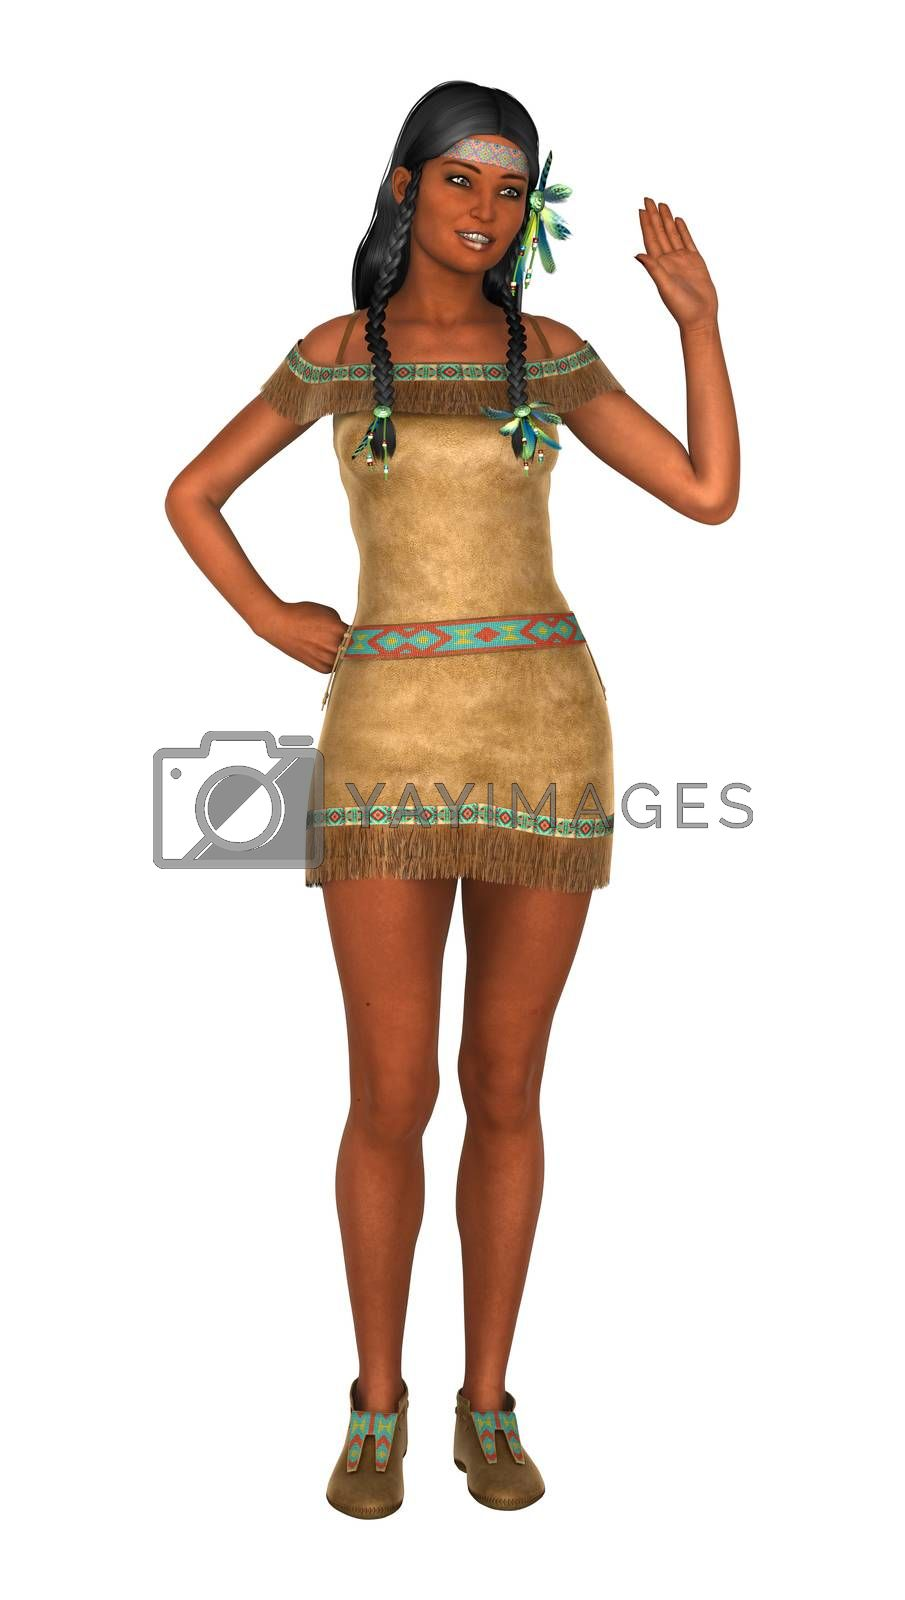 3D digital render of a native American woman waving isolated on white background